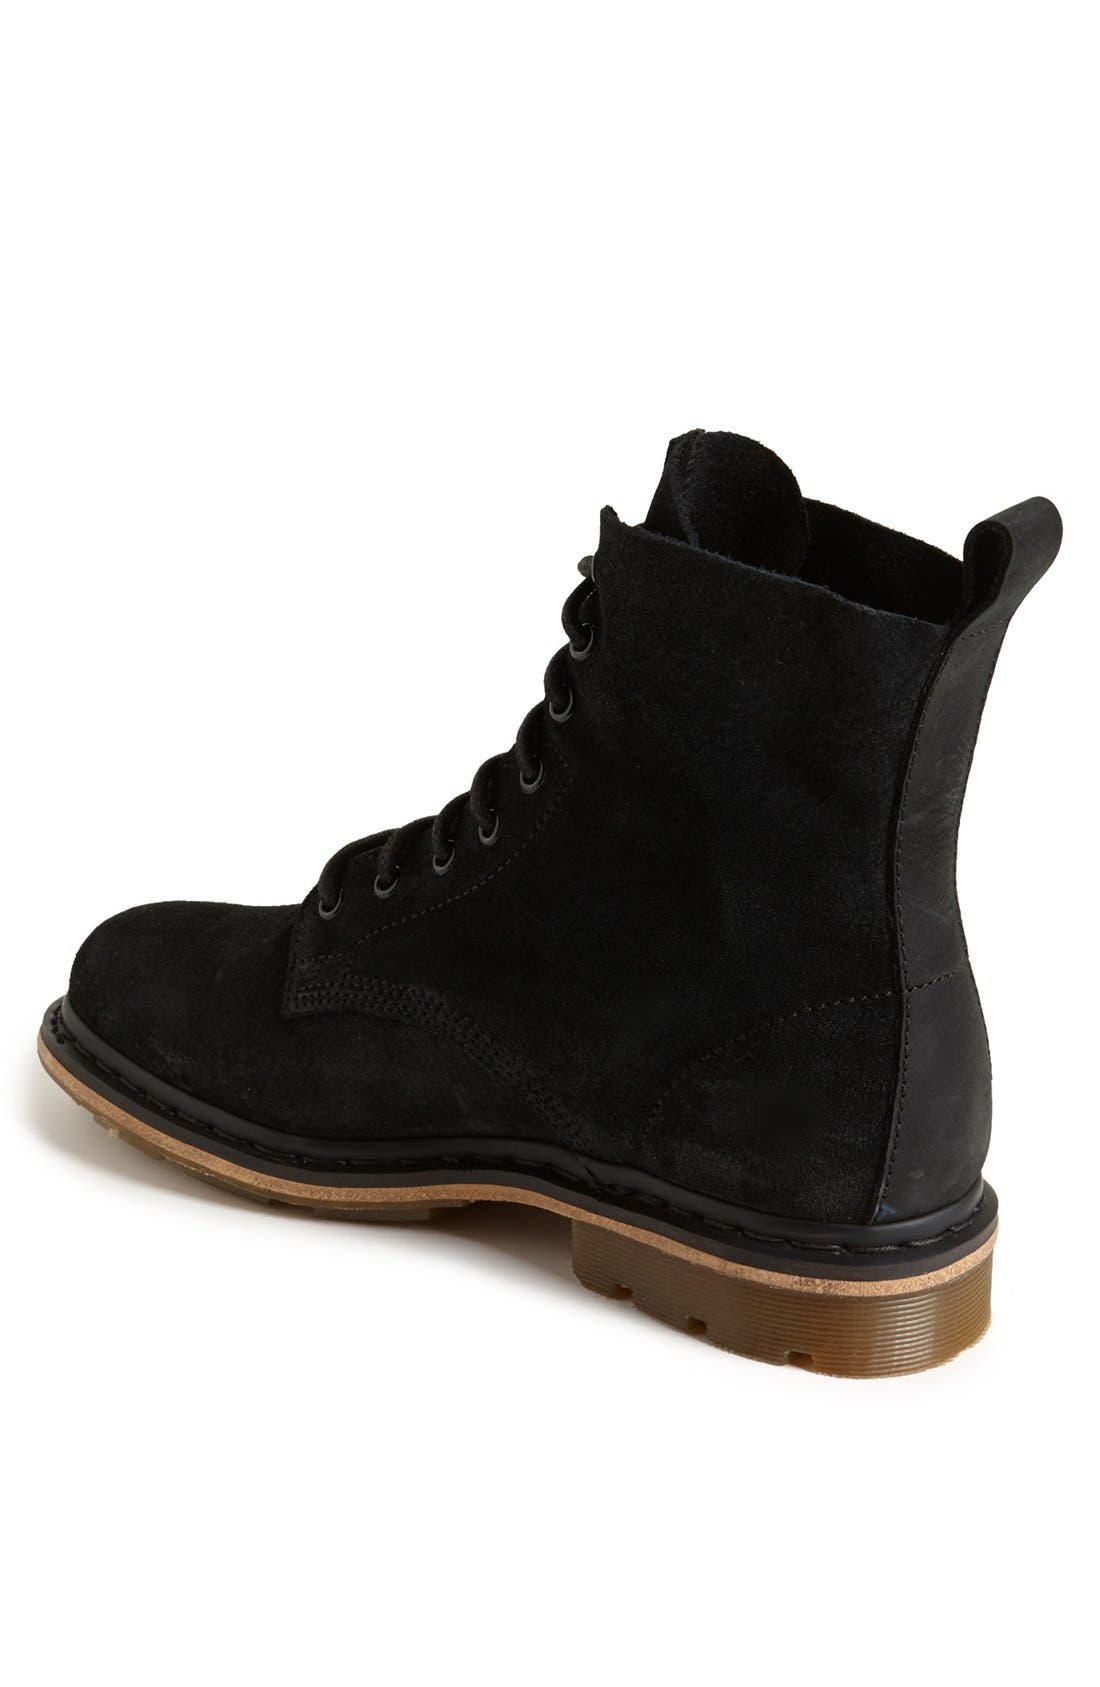 Alternate Image 2  - Dr. Martens 'Nero' Suede Boot